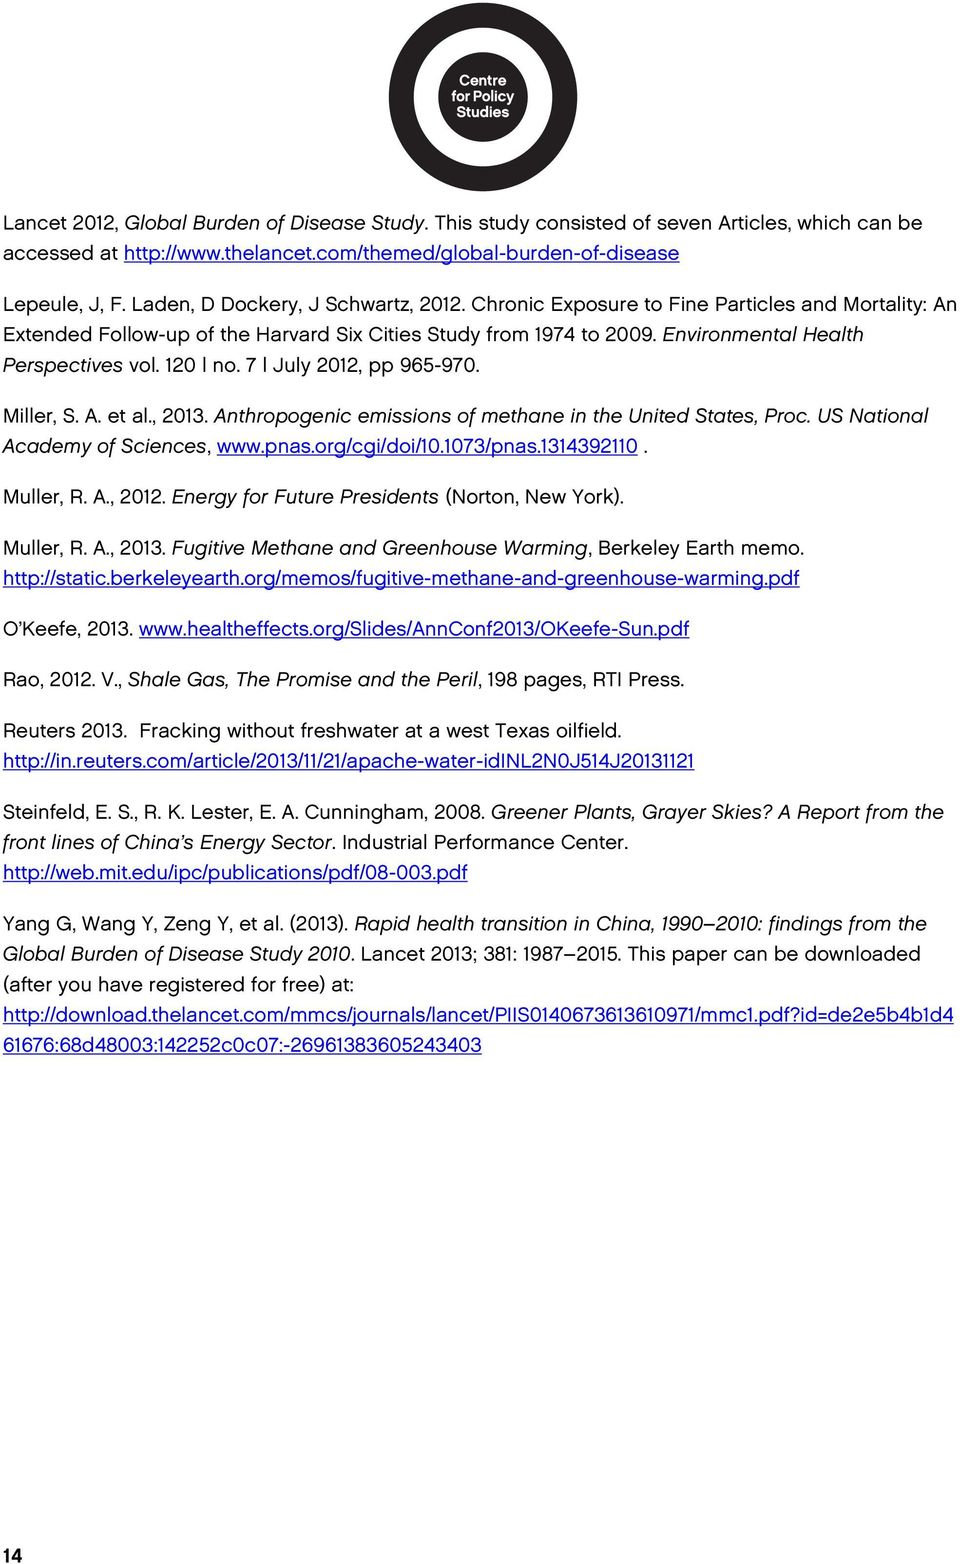 120 no. 7 July 2012, pp 965-970. Miller, S. A. et al., 2013. Anthropogenic emissions of methane in the United States, Proc. US National Academy of Sciences, www.pnas.org/cgi/doi/10.1073/pnas.